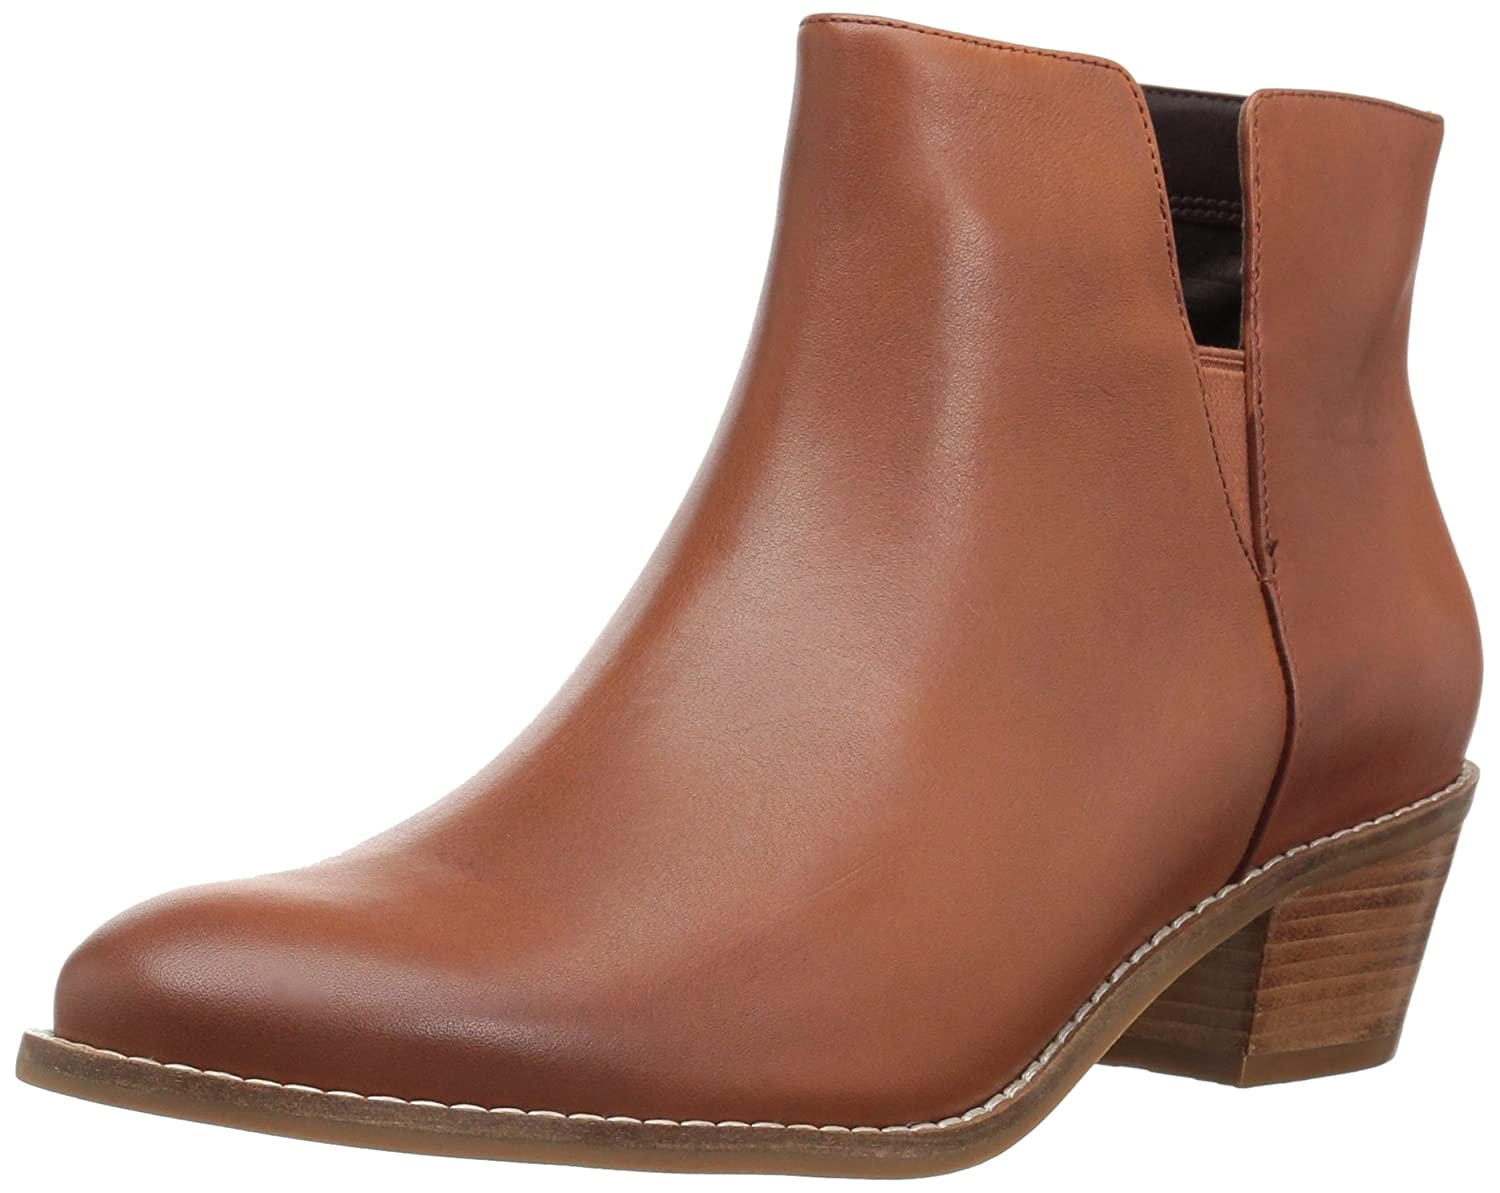 Cole Haan Women's Abbot Ankle Boot B01MR9FF9F 5.5 B(M) US|British Tan